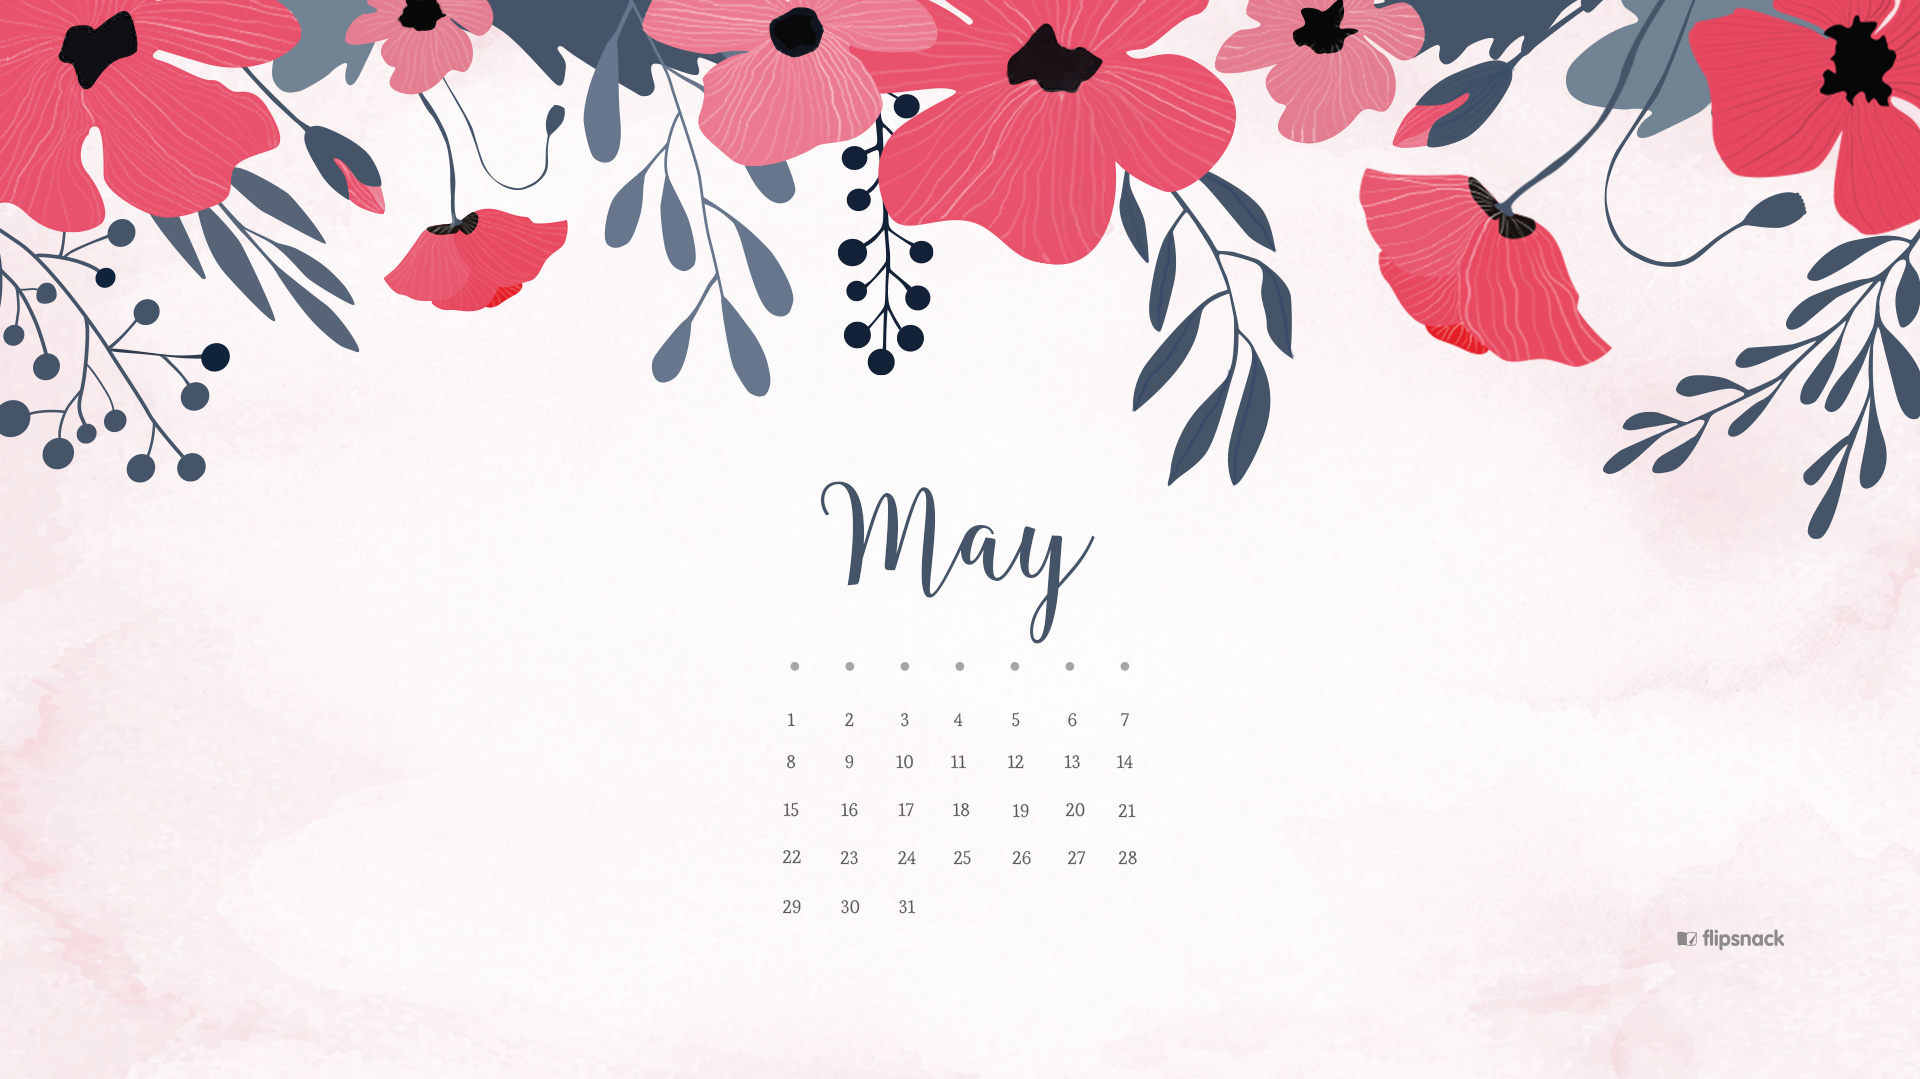 Calendar Background For Desktop : May free calendar wallpaper desktop background